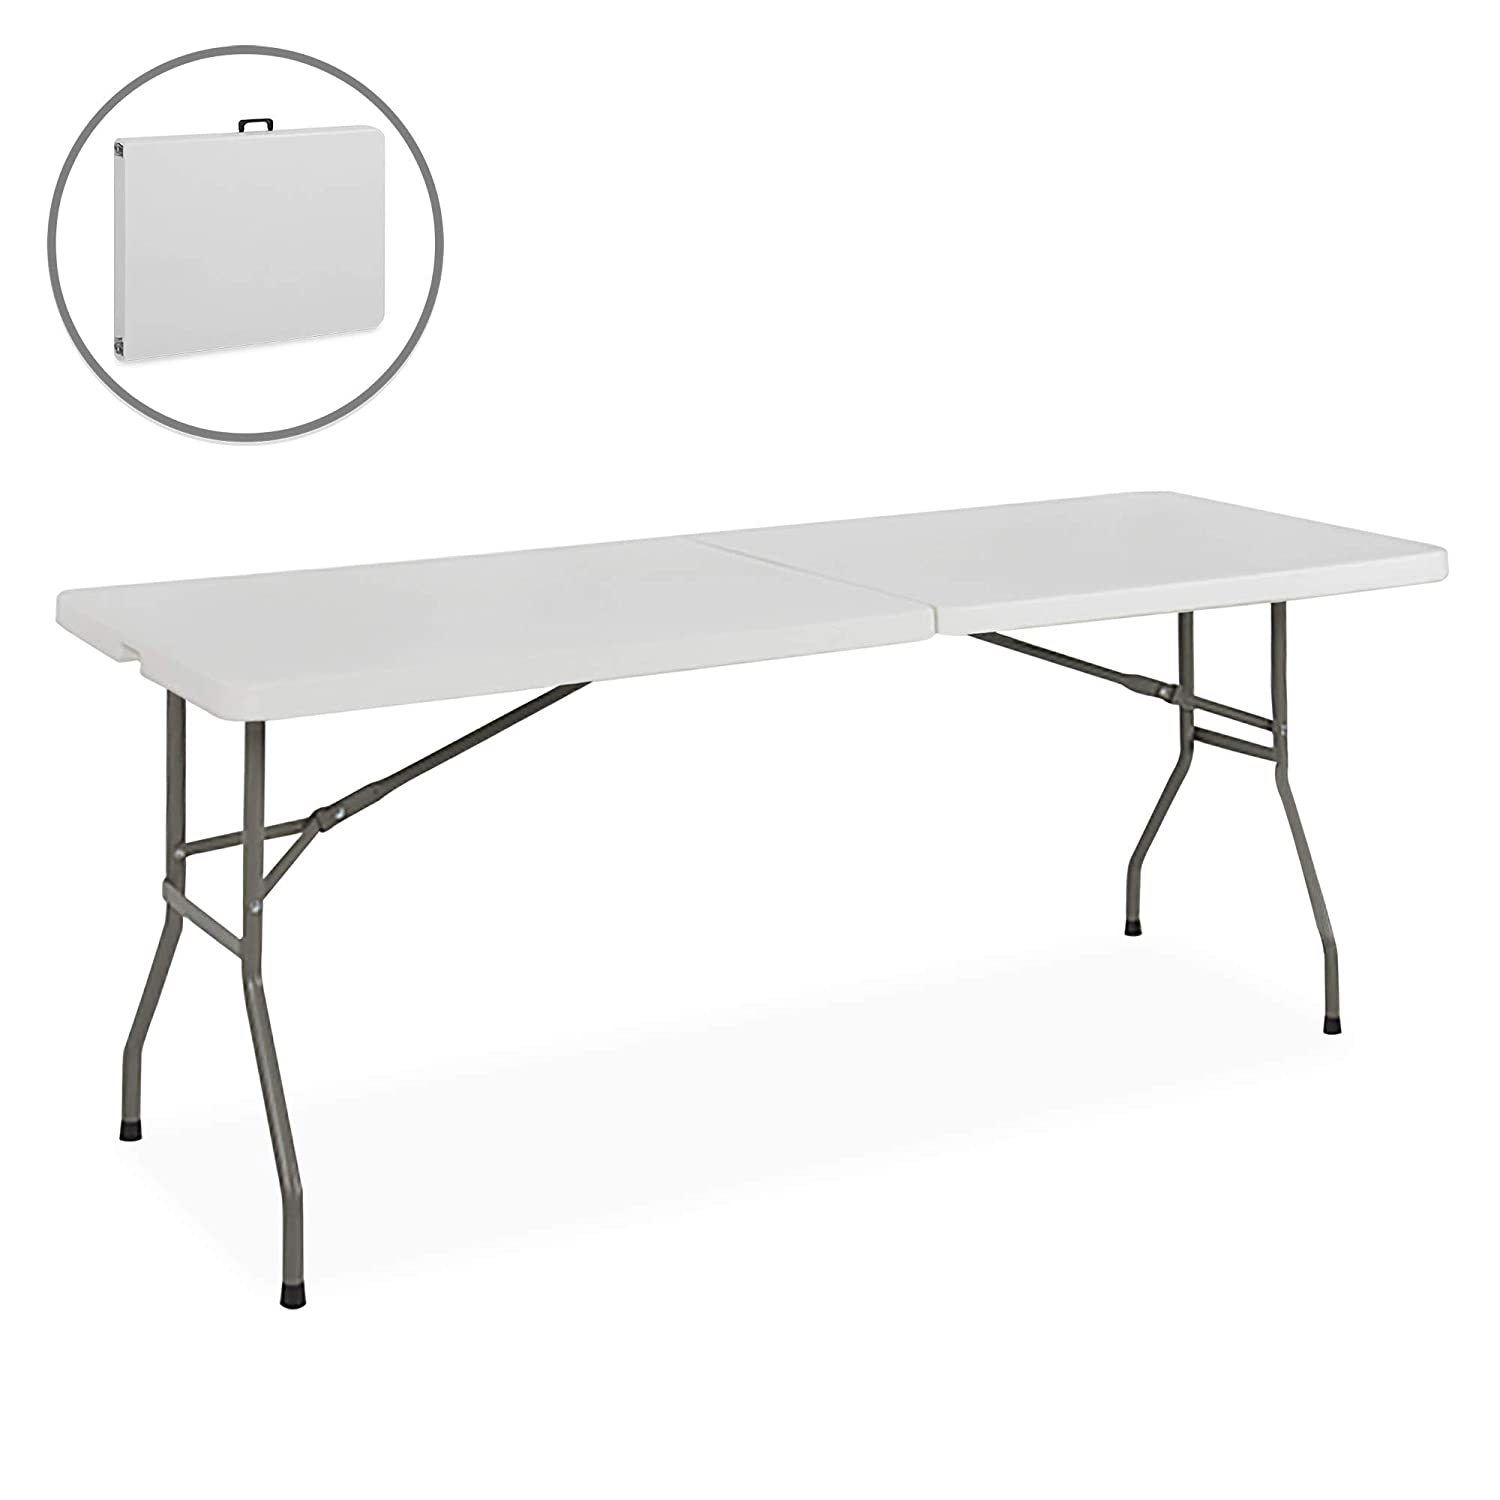 Best Choice Products Portable 6 Foot Folding Utility Table – White